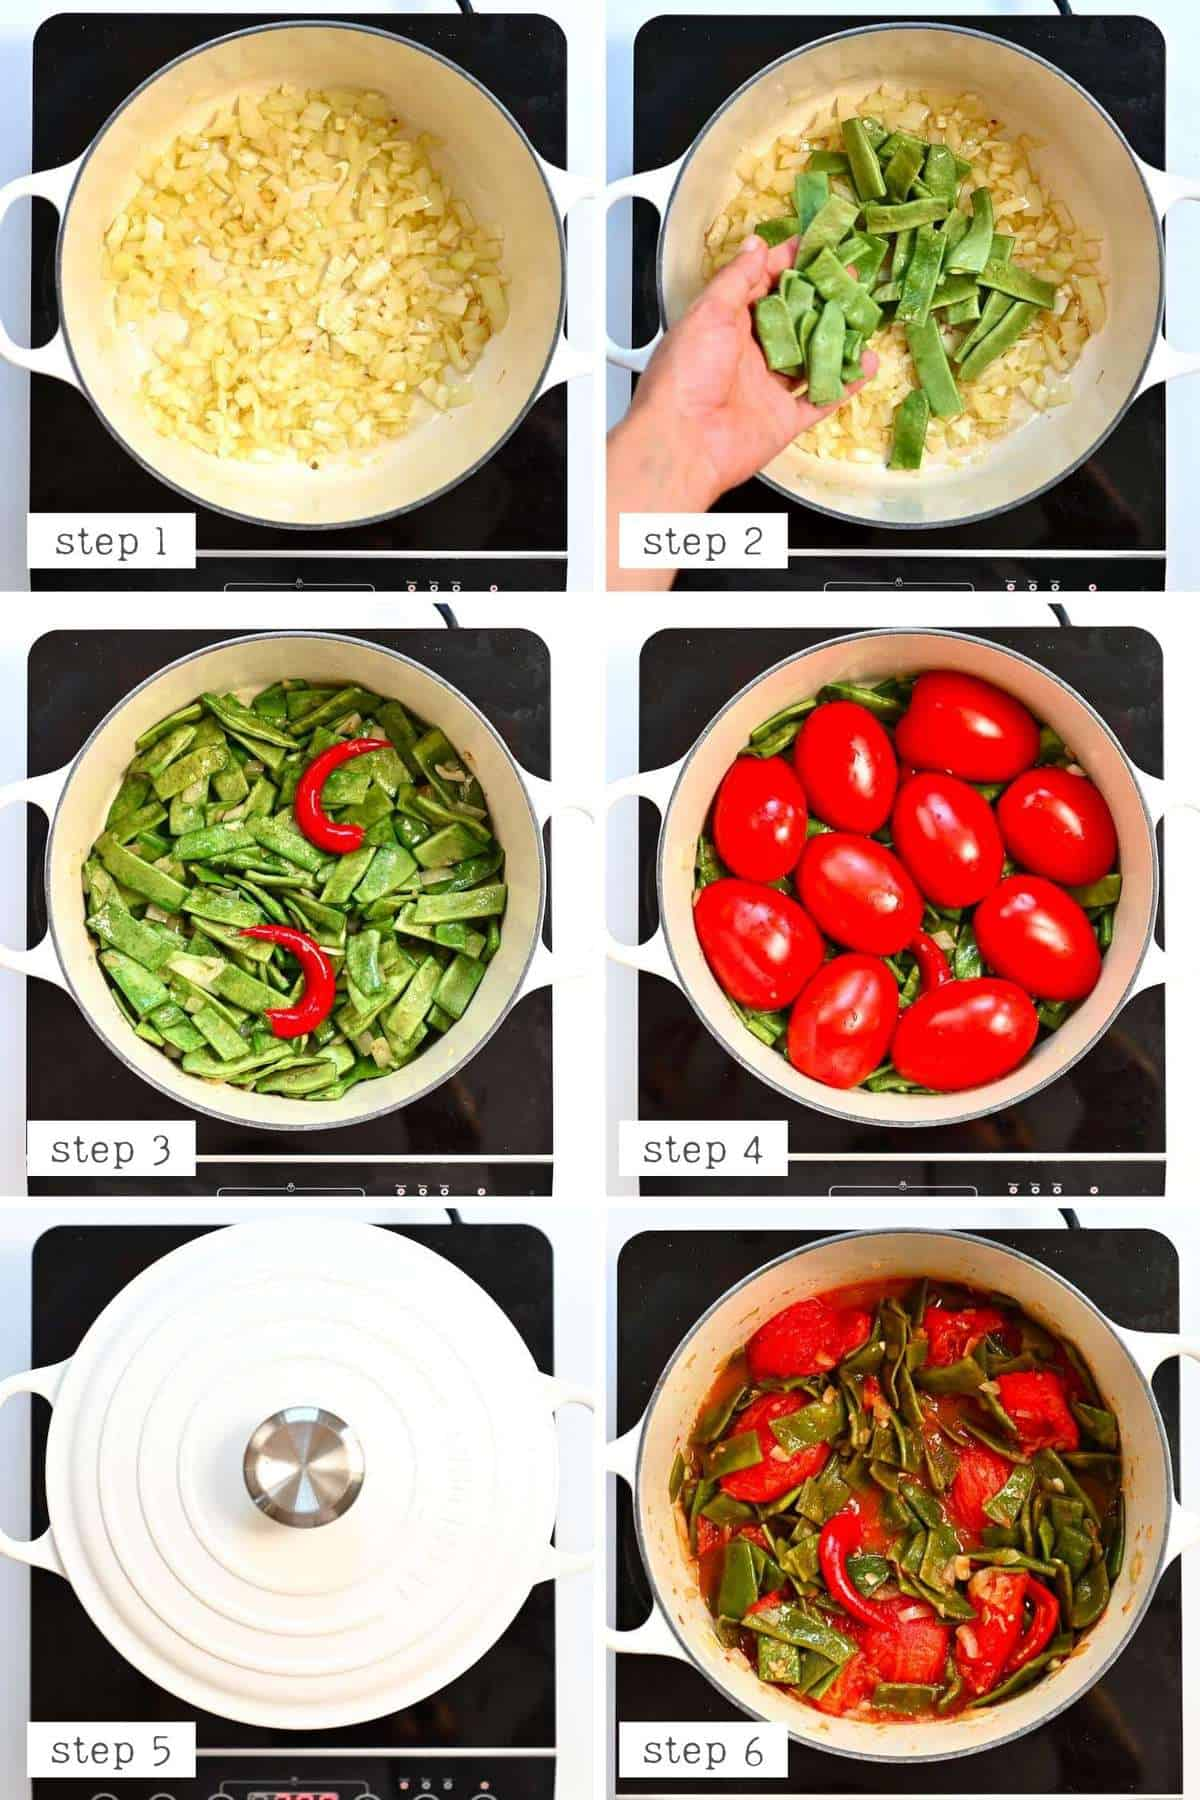 Cooking green beans steps